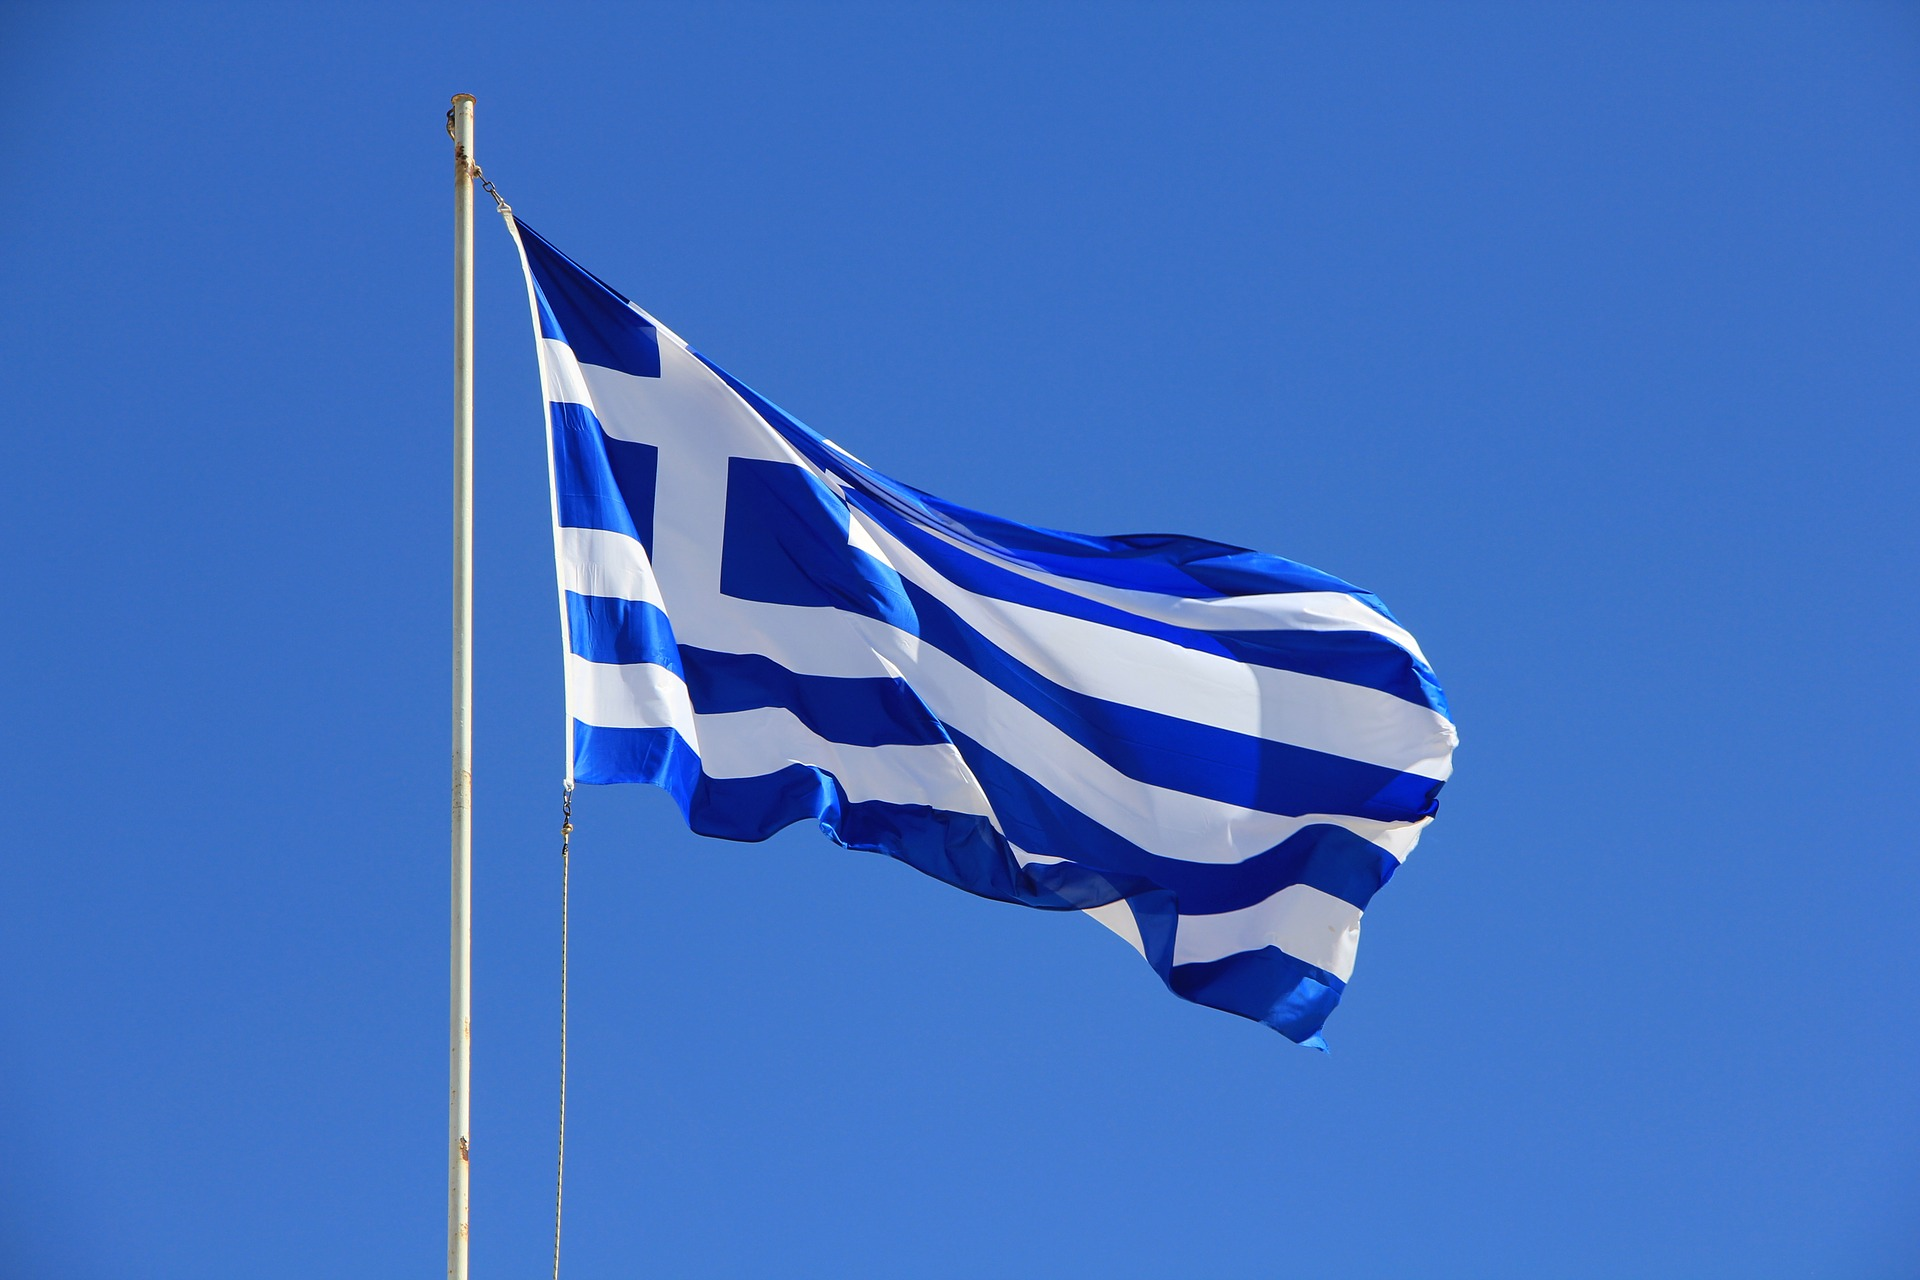 Image of the flag of Greece